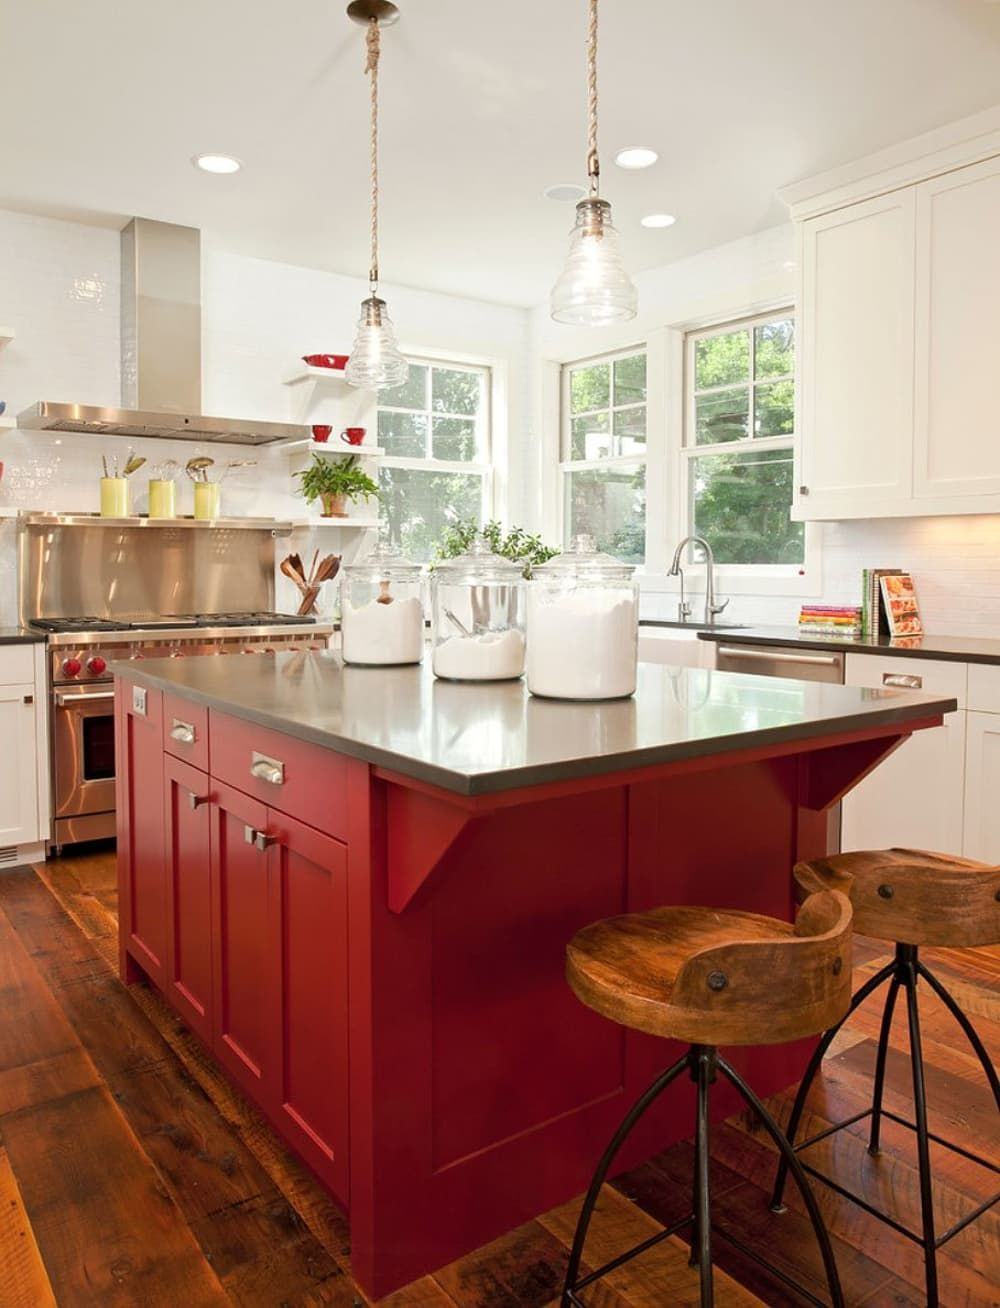 18 Ways To Use Red In The Kitchen Just A Little Bit Or A Lot Red Kitchen Island Barn Red Kitchen Red Kitchen Red kitchen island with stools